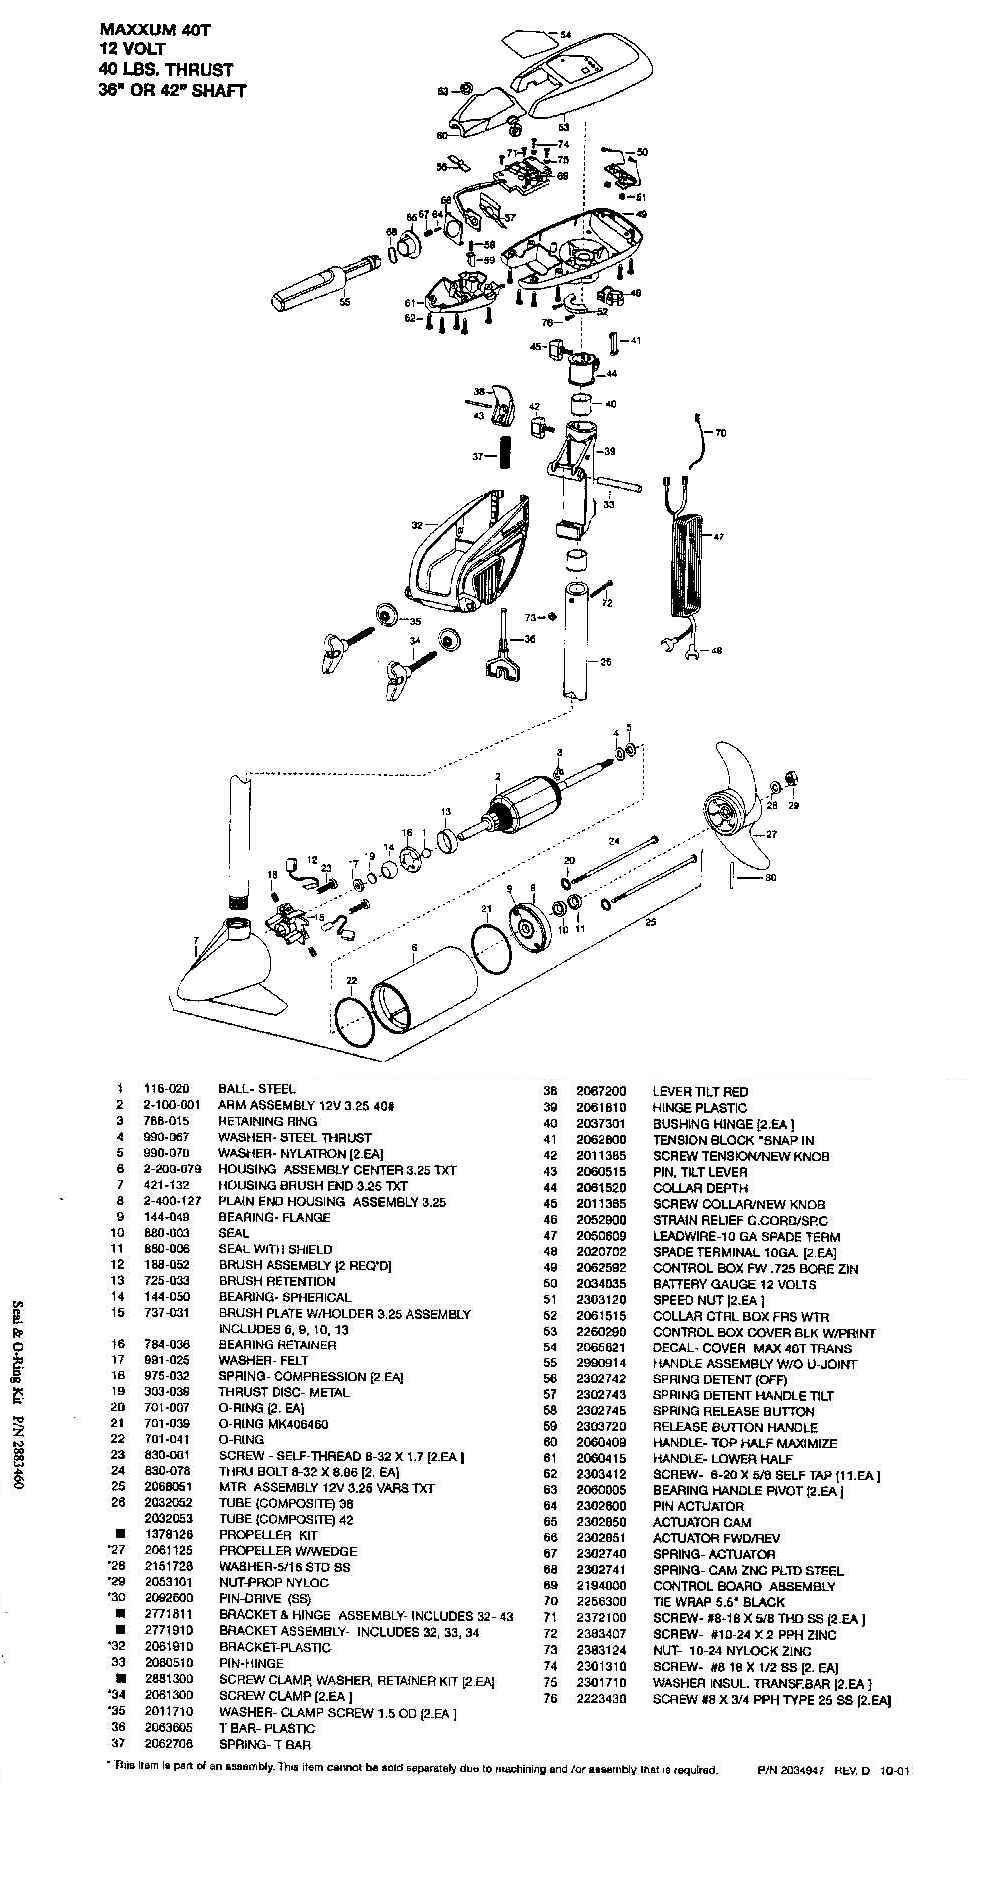 minn kota maxxum 74 wiring diagram Collection-minn kota maxxum wiring diagram circuit connection diagram u2022 rh scooplocal co minn kota maxxum 74 owners manual minn kota maxxum 74 parts schematic 12-b